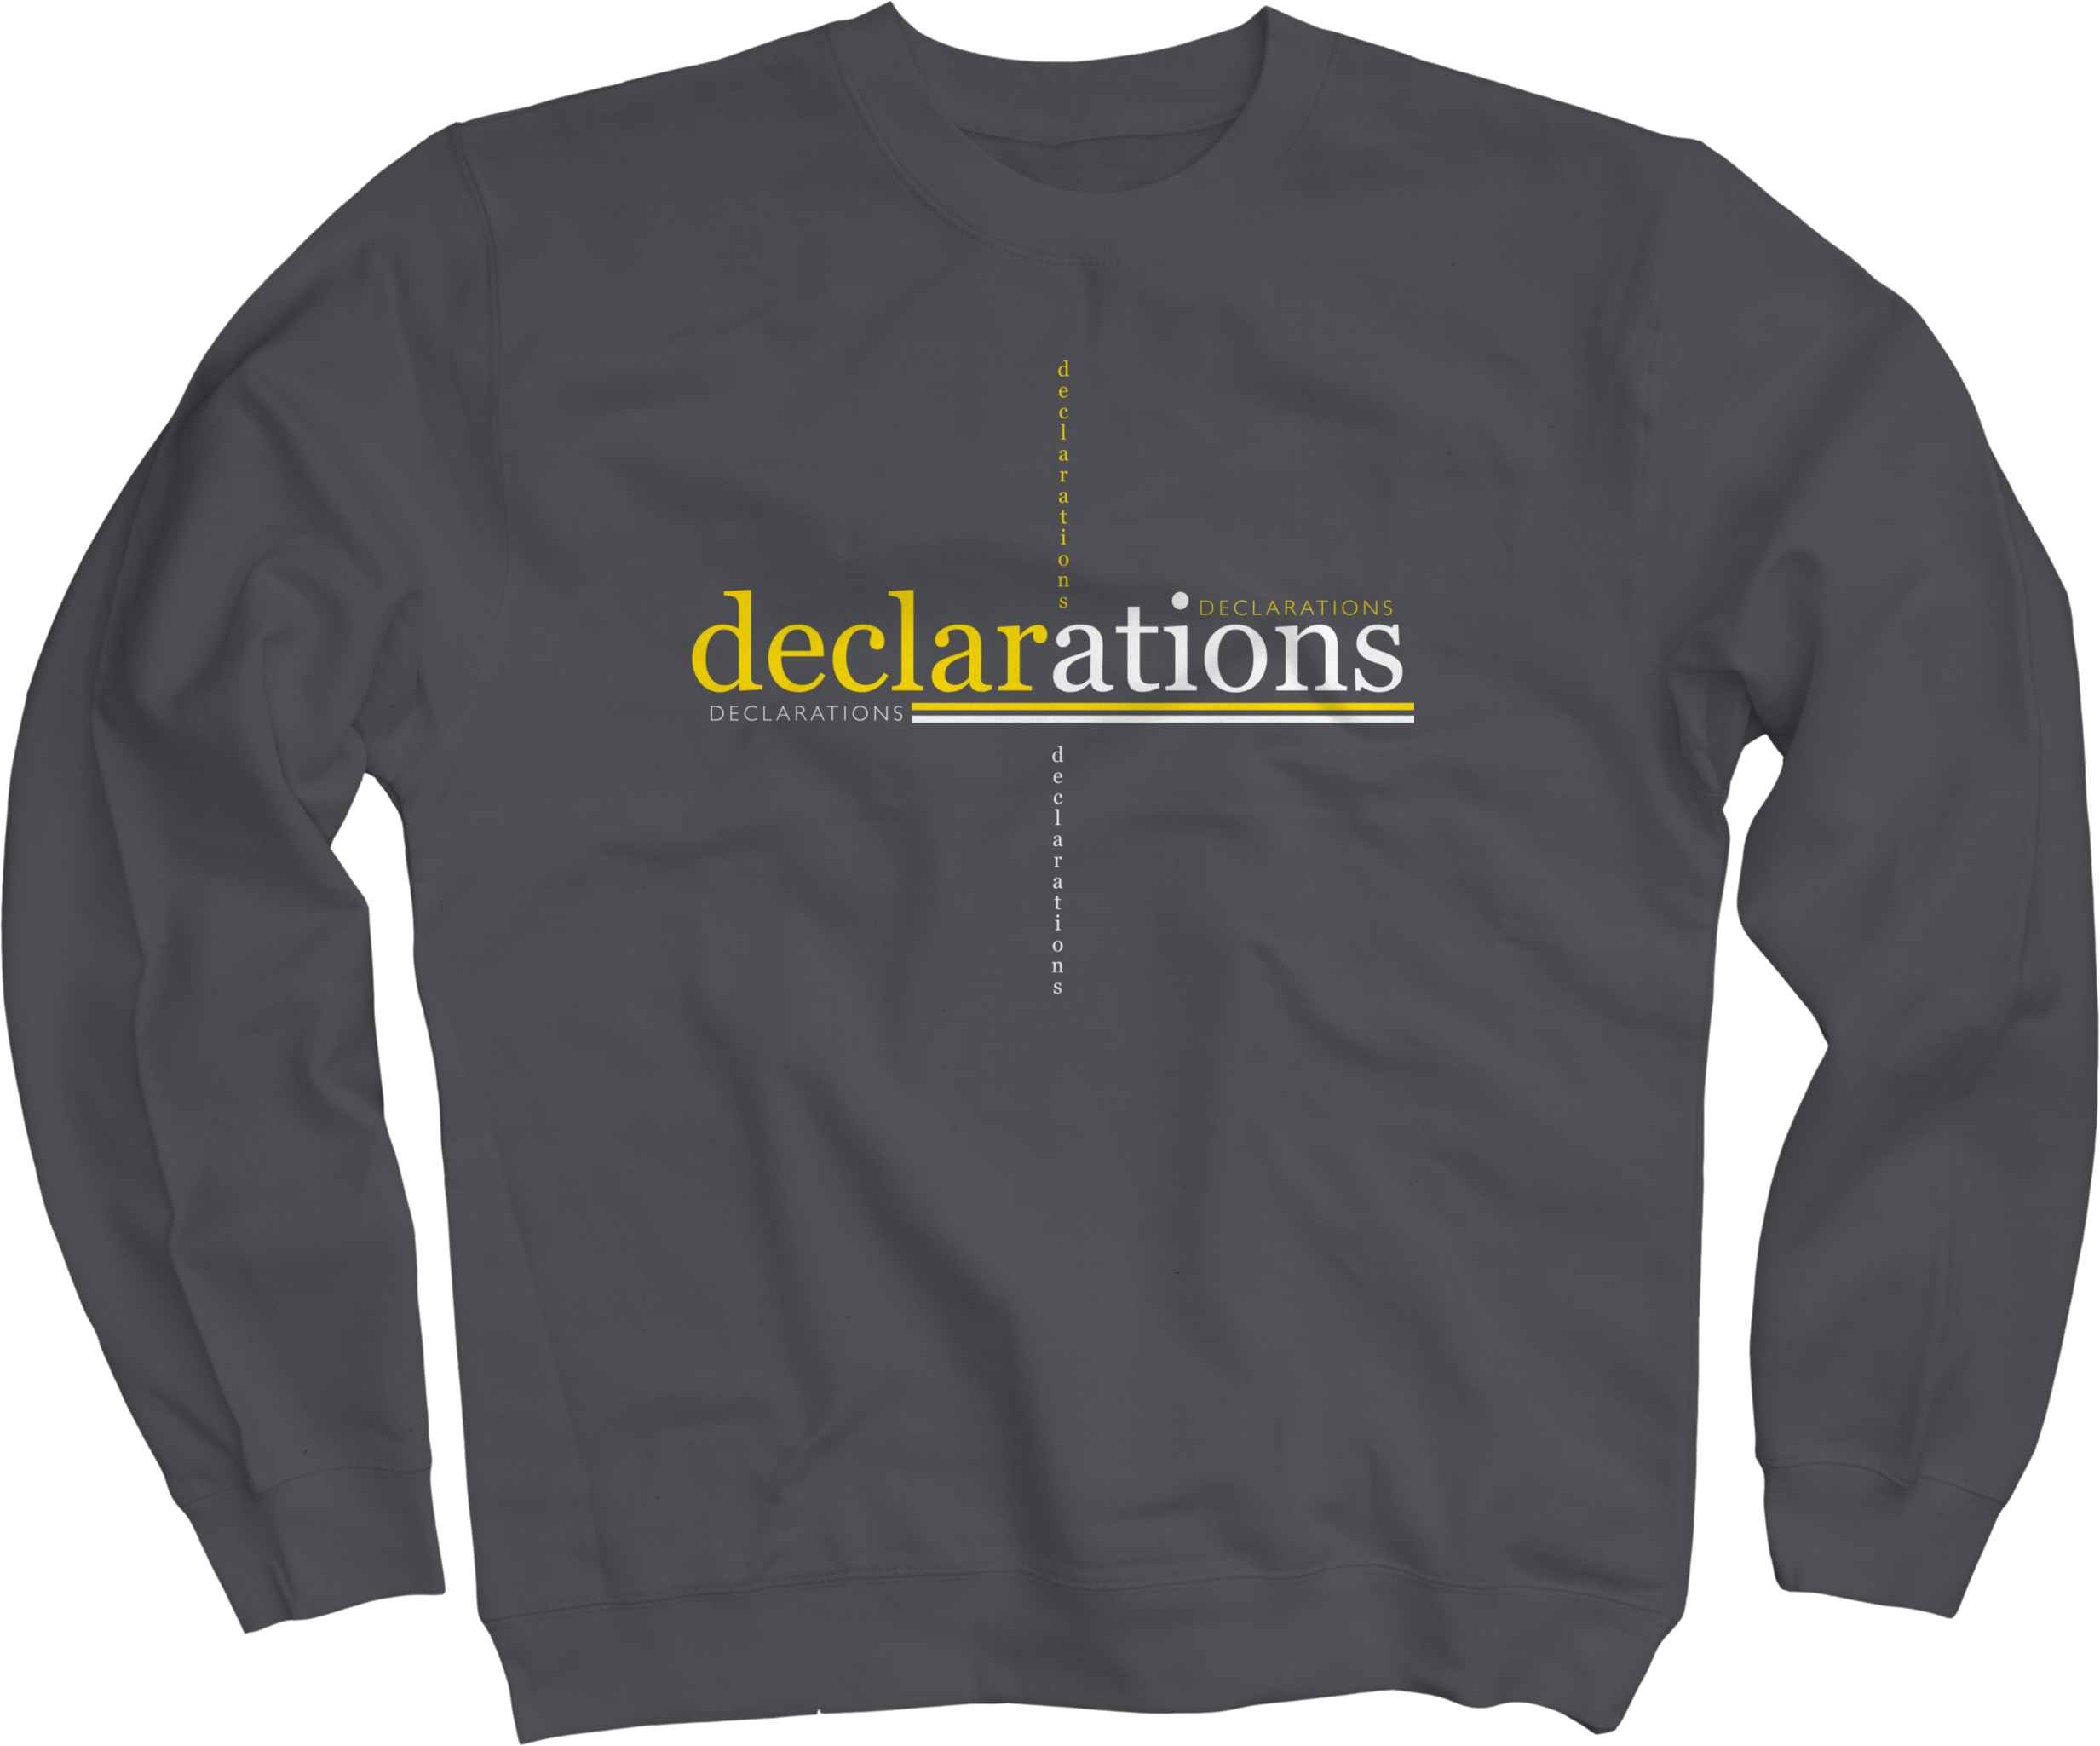 Declarations on Charcoal Crewneck